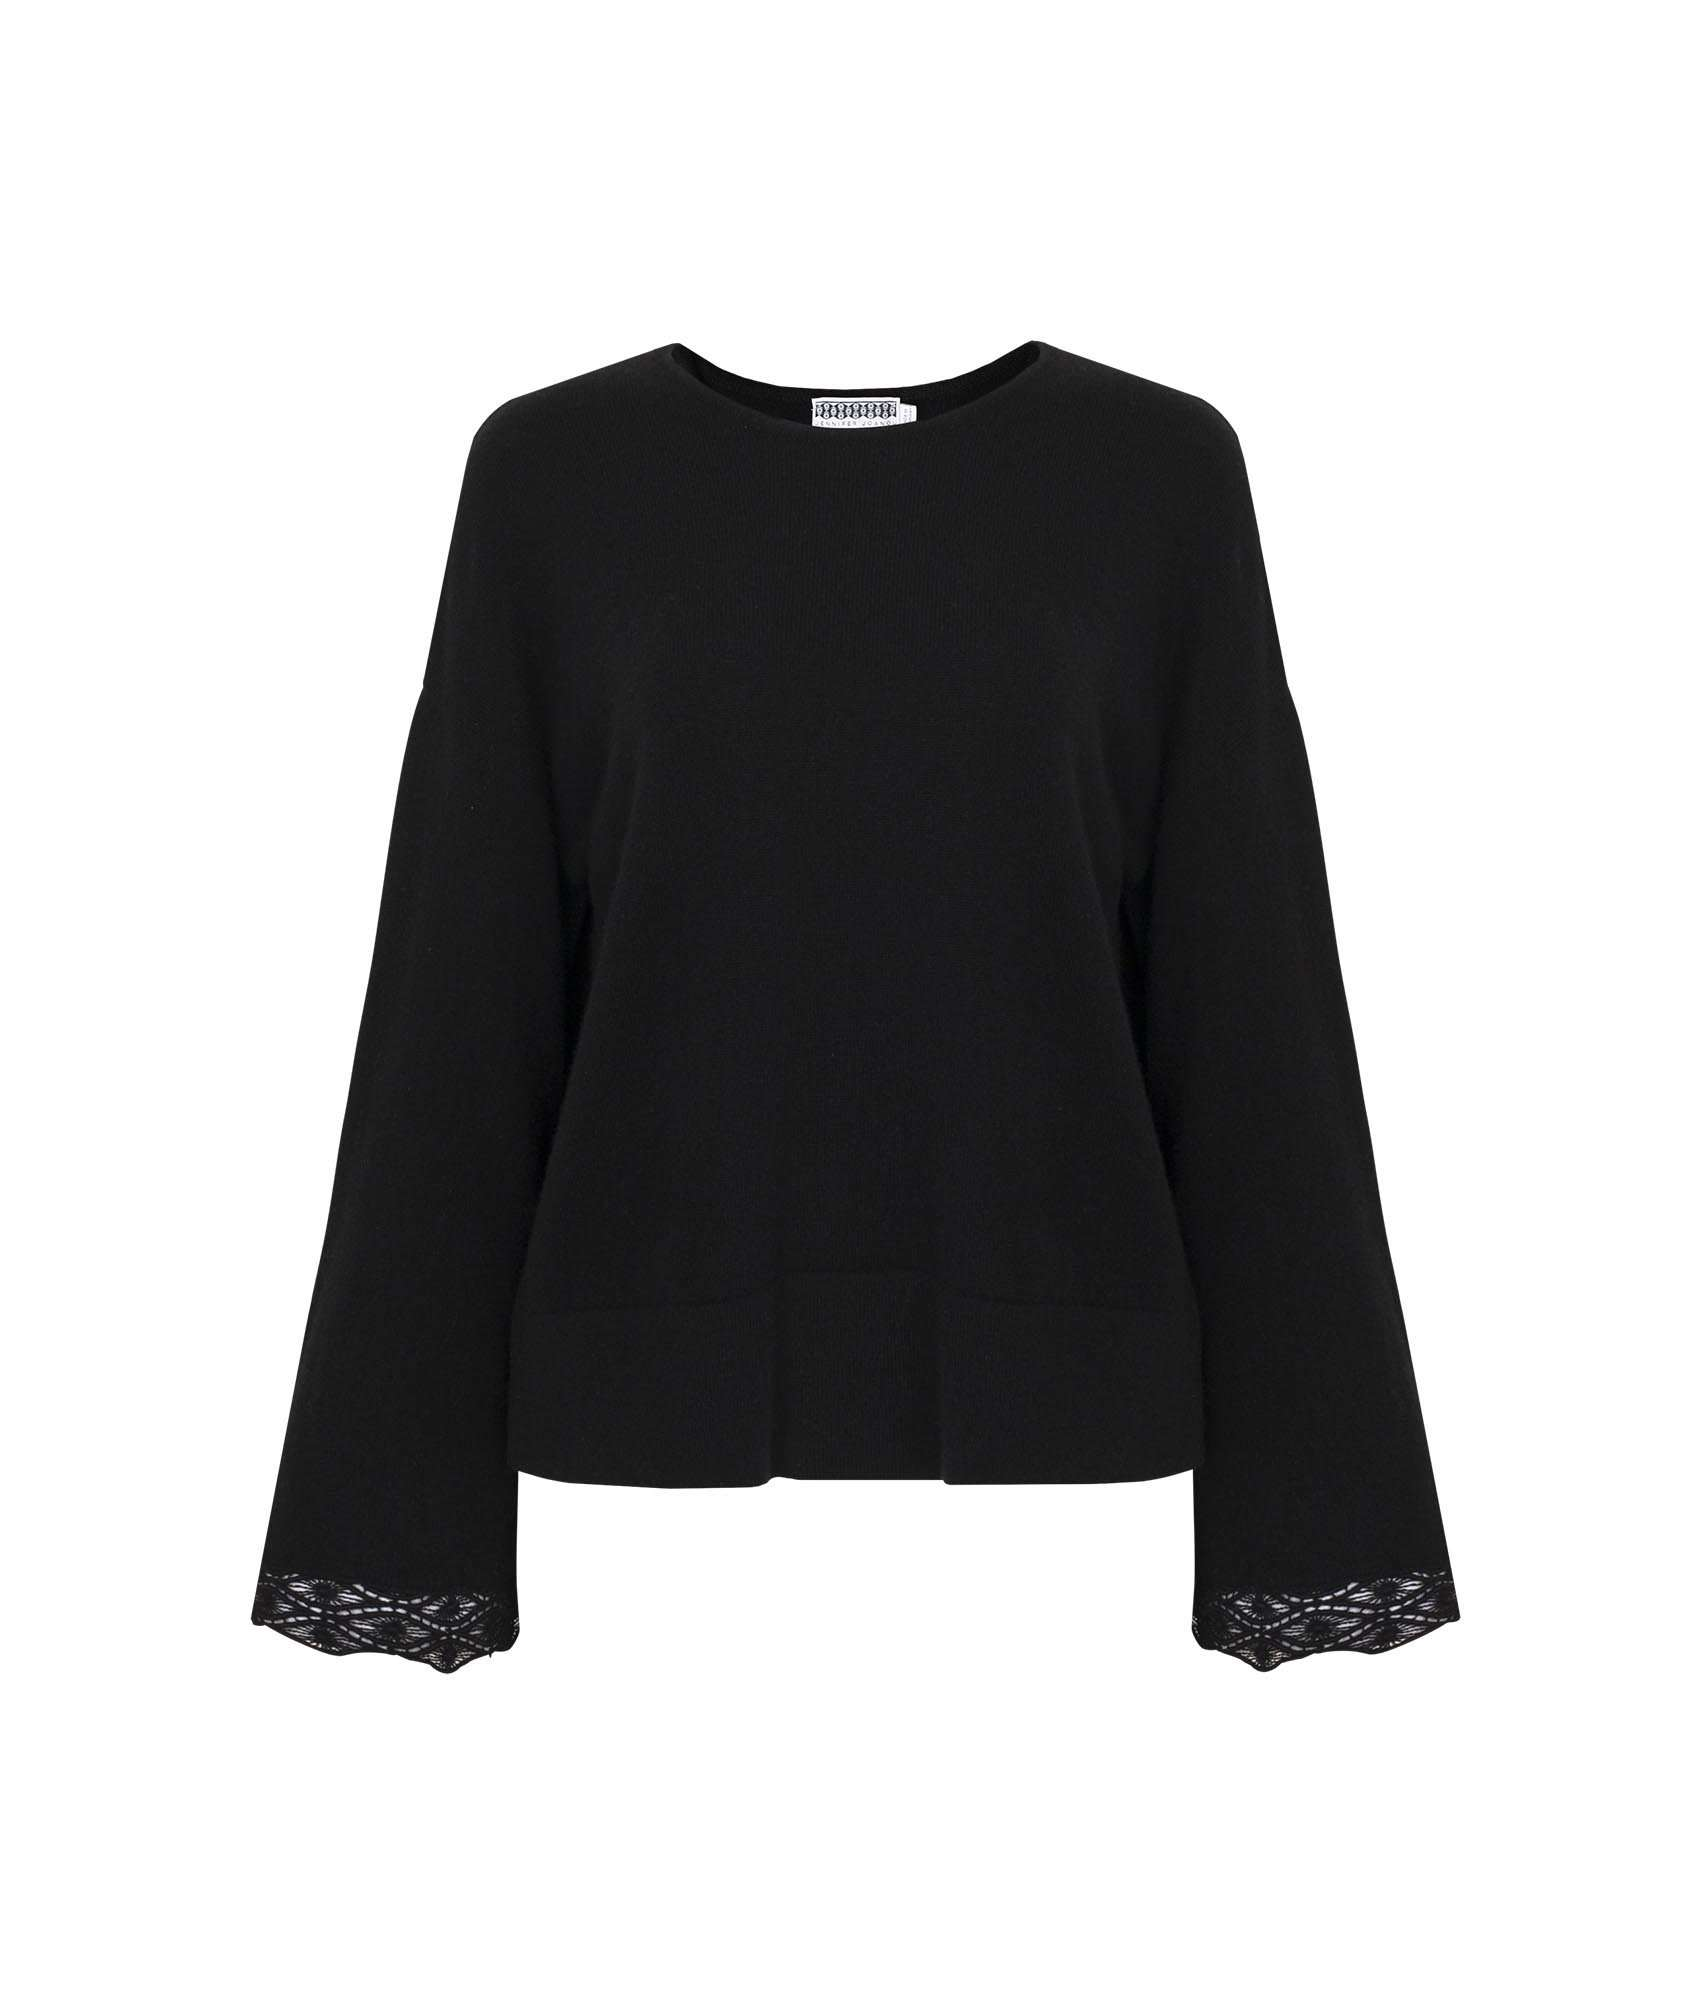 JENNIFER JOANOU New York | Jones Crew Neck Sweater